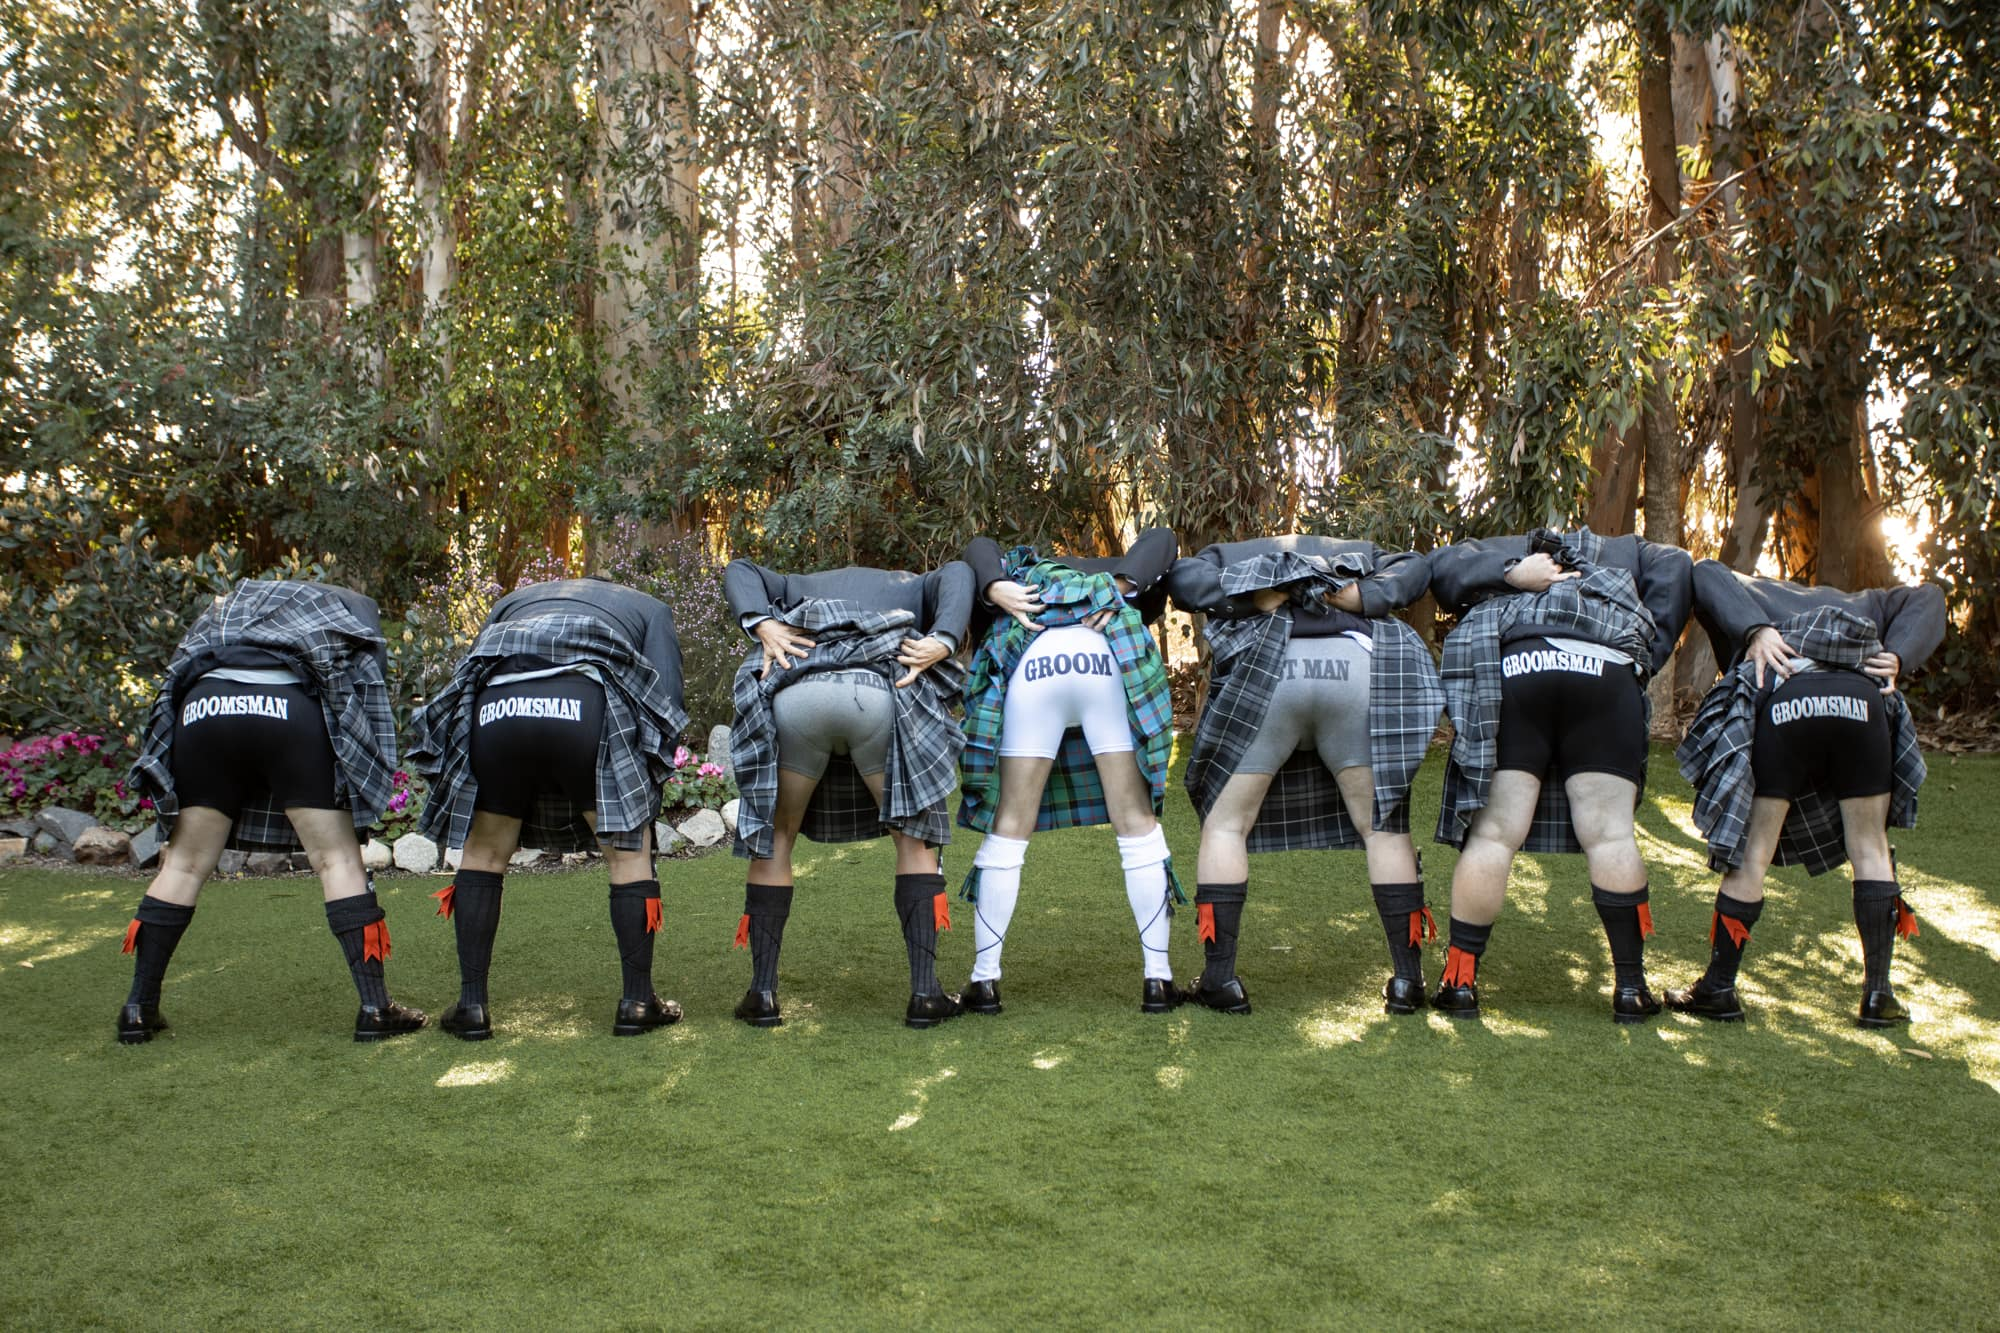 Groom and groomsmen in kilts with matching boxers at Twin Oaks Gardens wedding venue